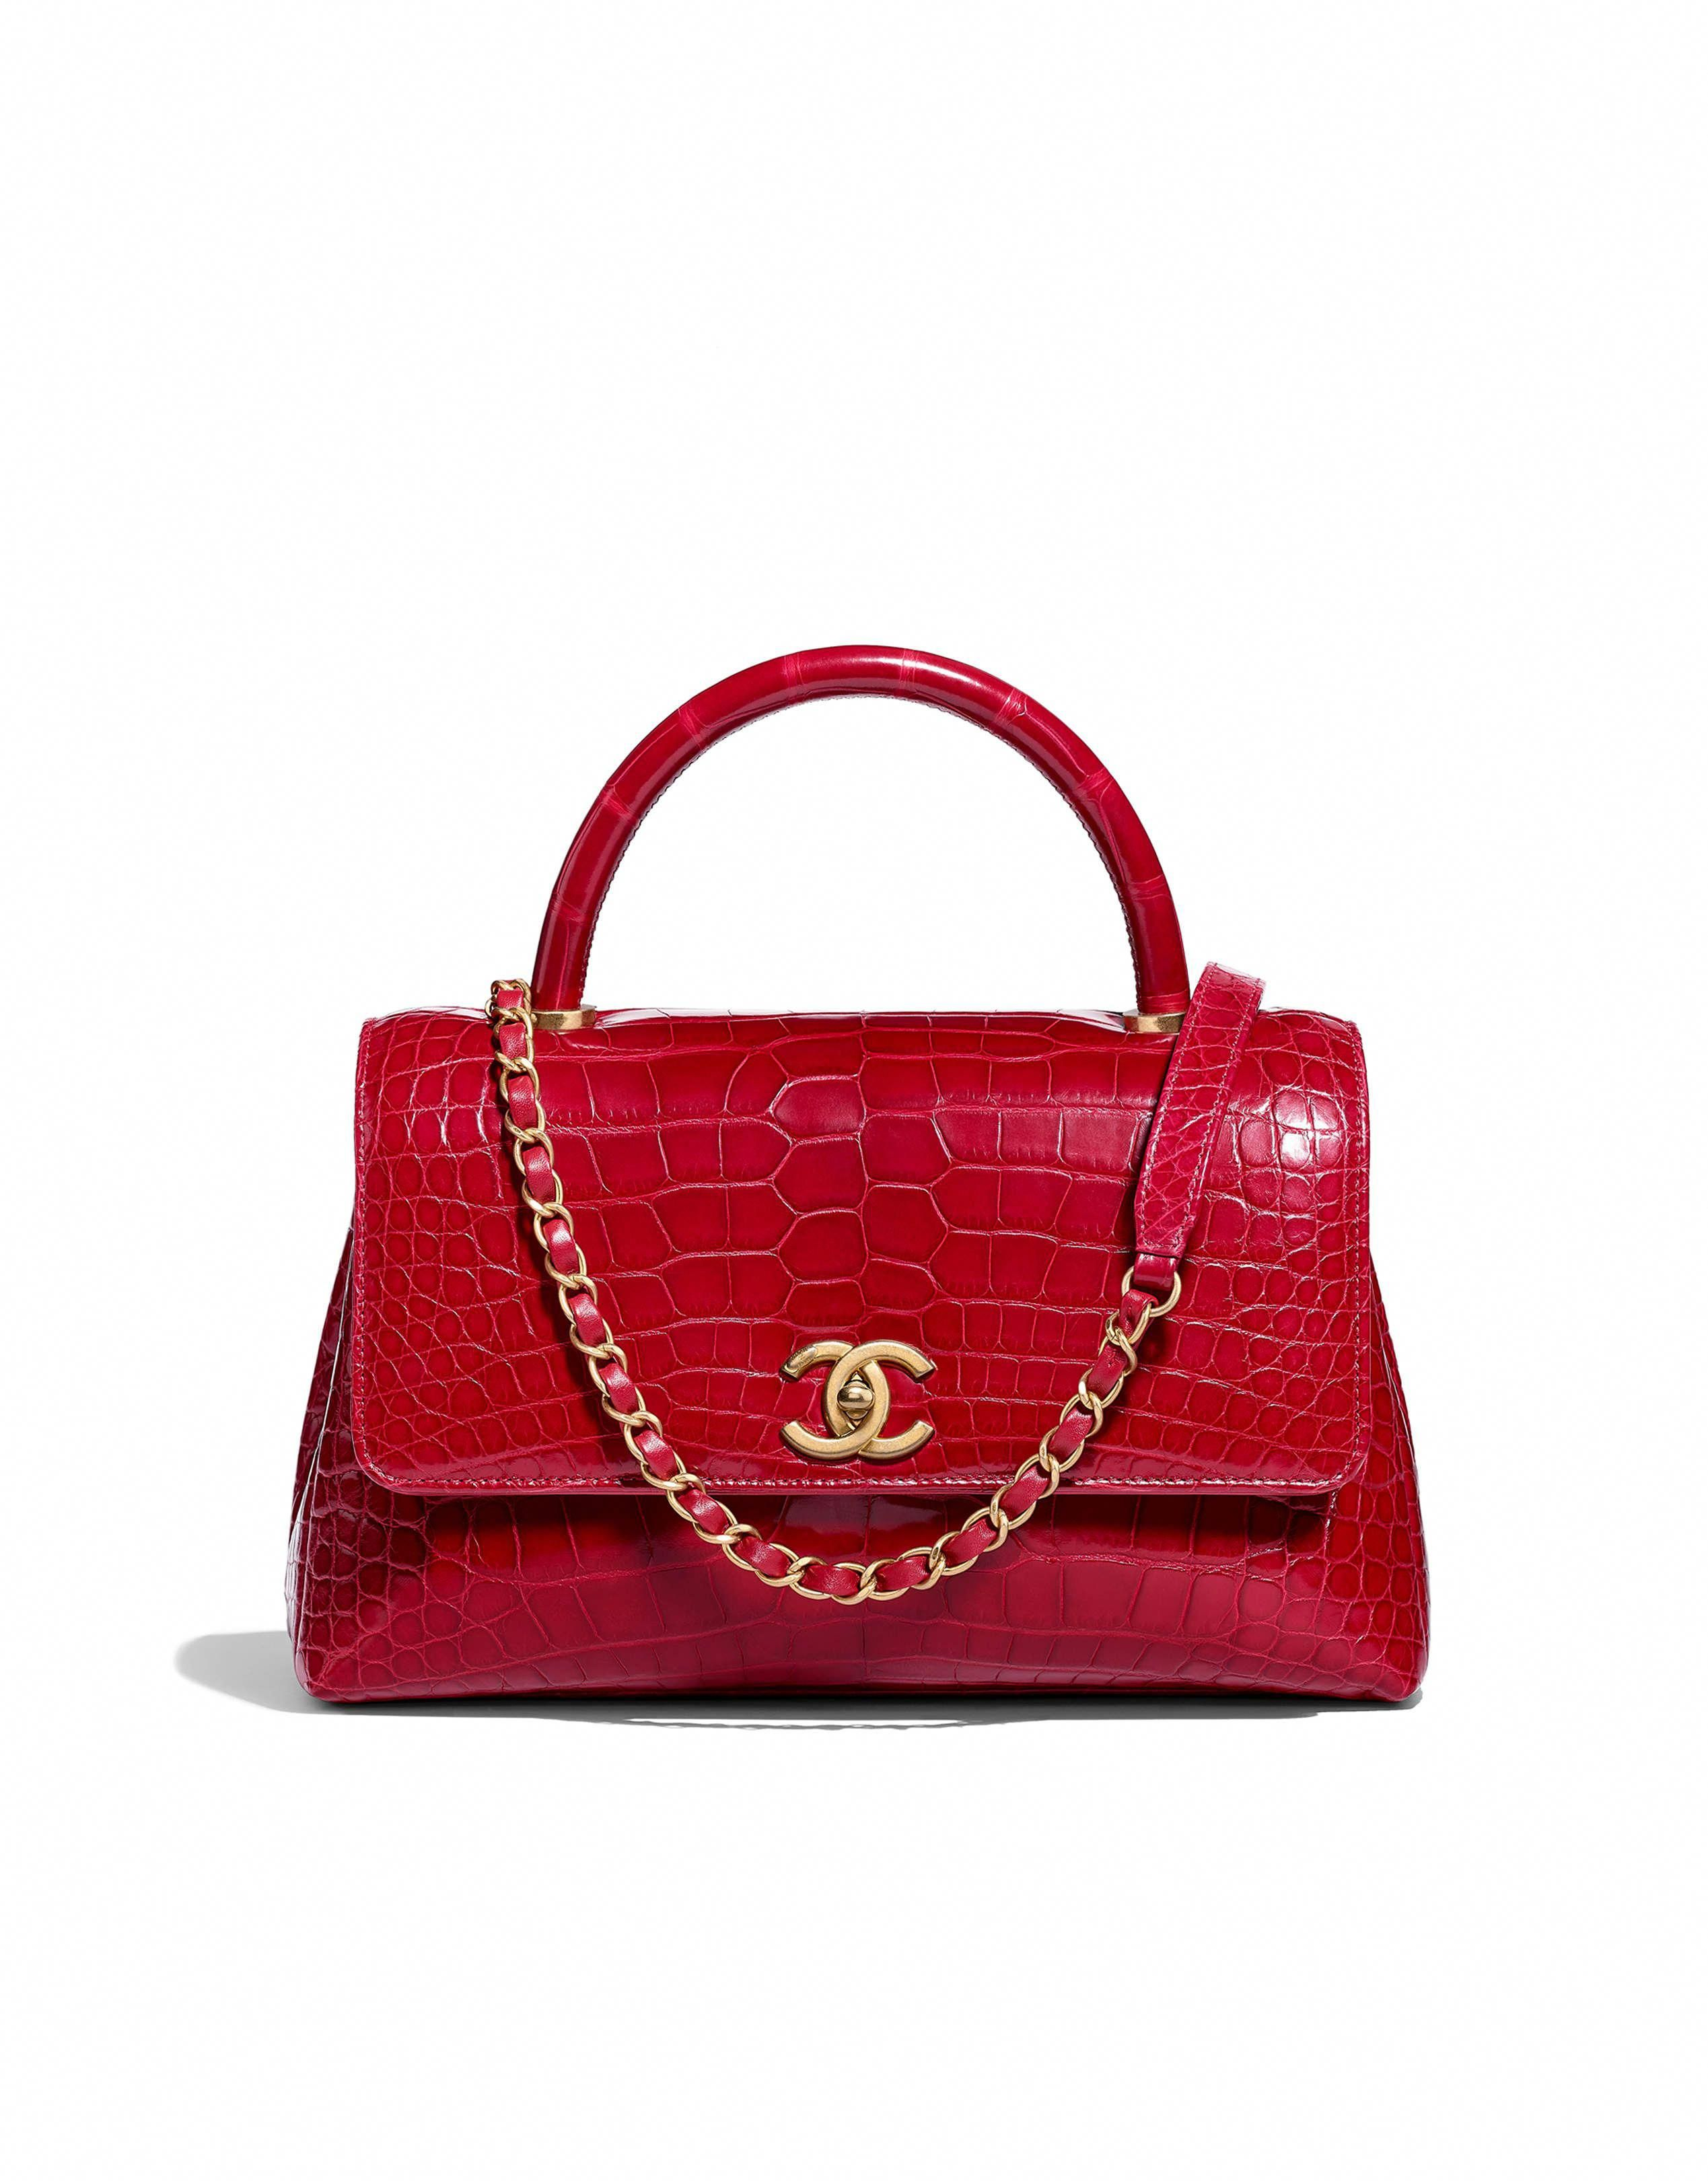 2019 year for lady- Dubai chanel themed cruise bags